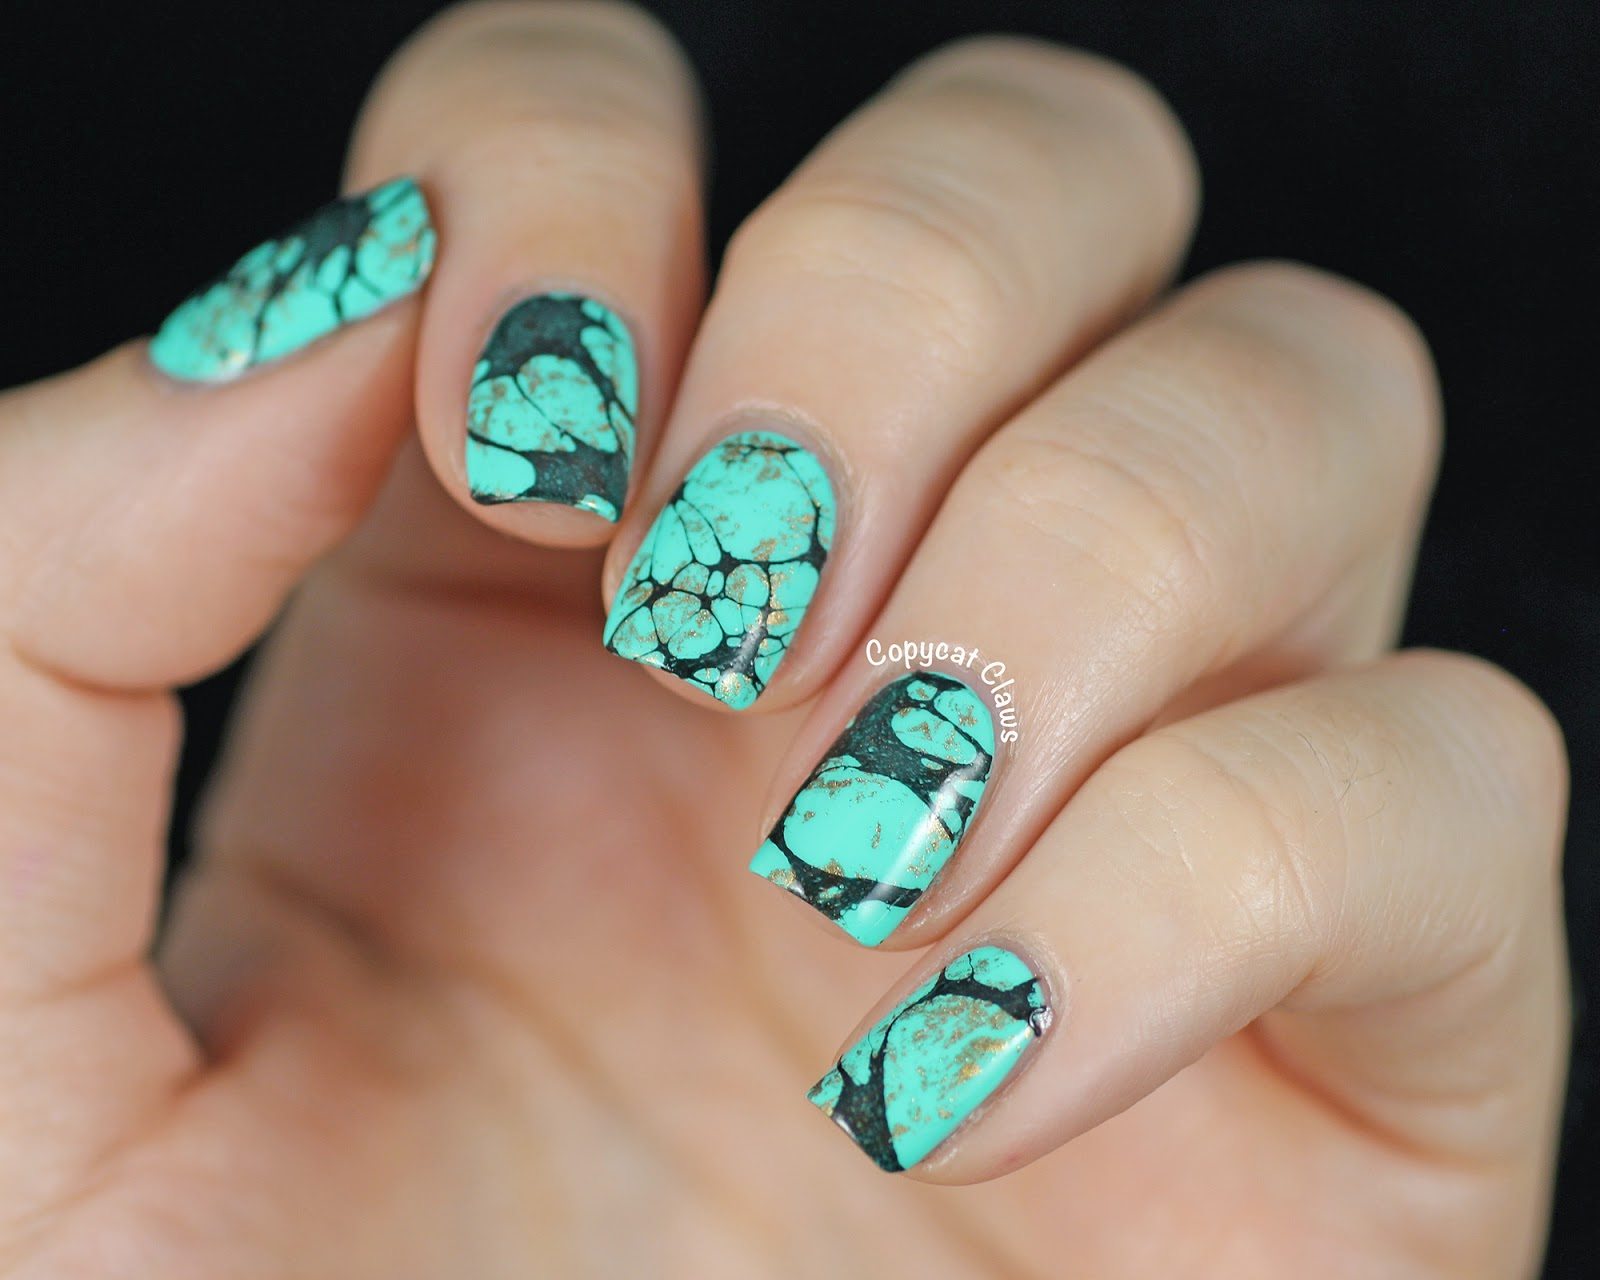 Copycat Claws: Turquoise Stone Nail Art & China Glaze Too Yacht To ...